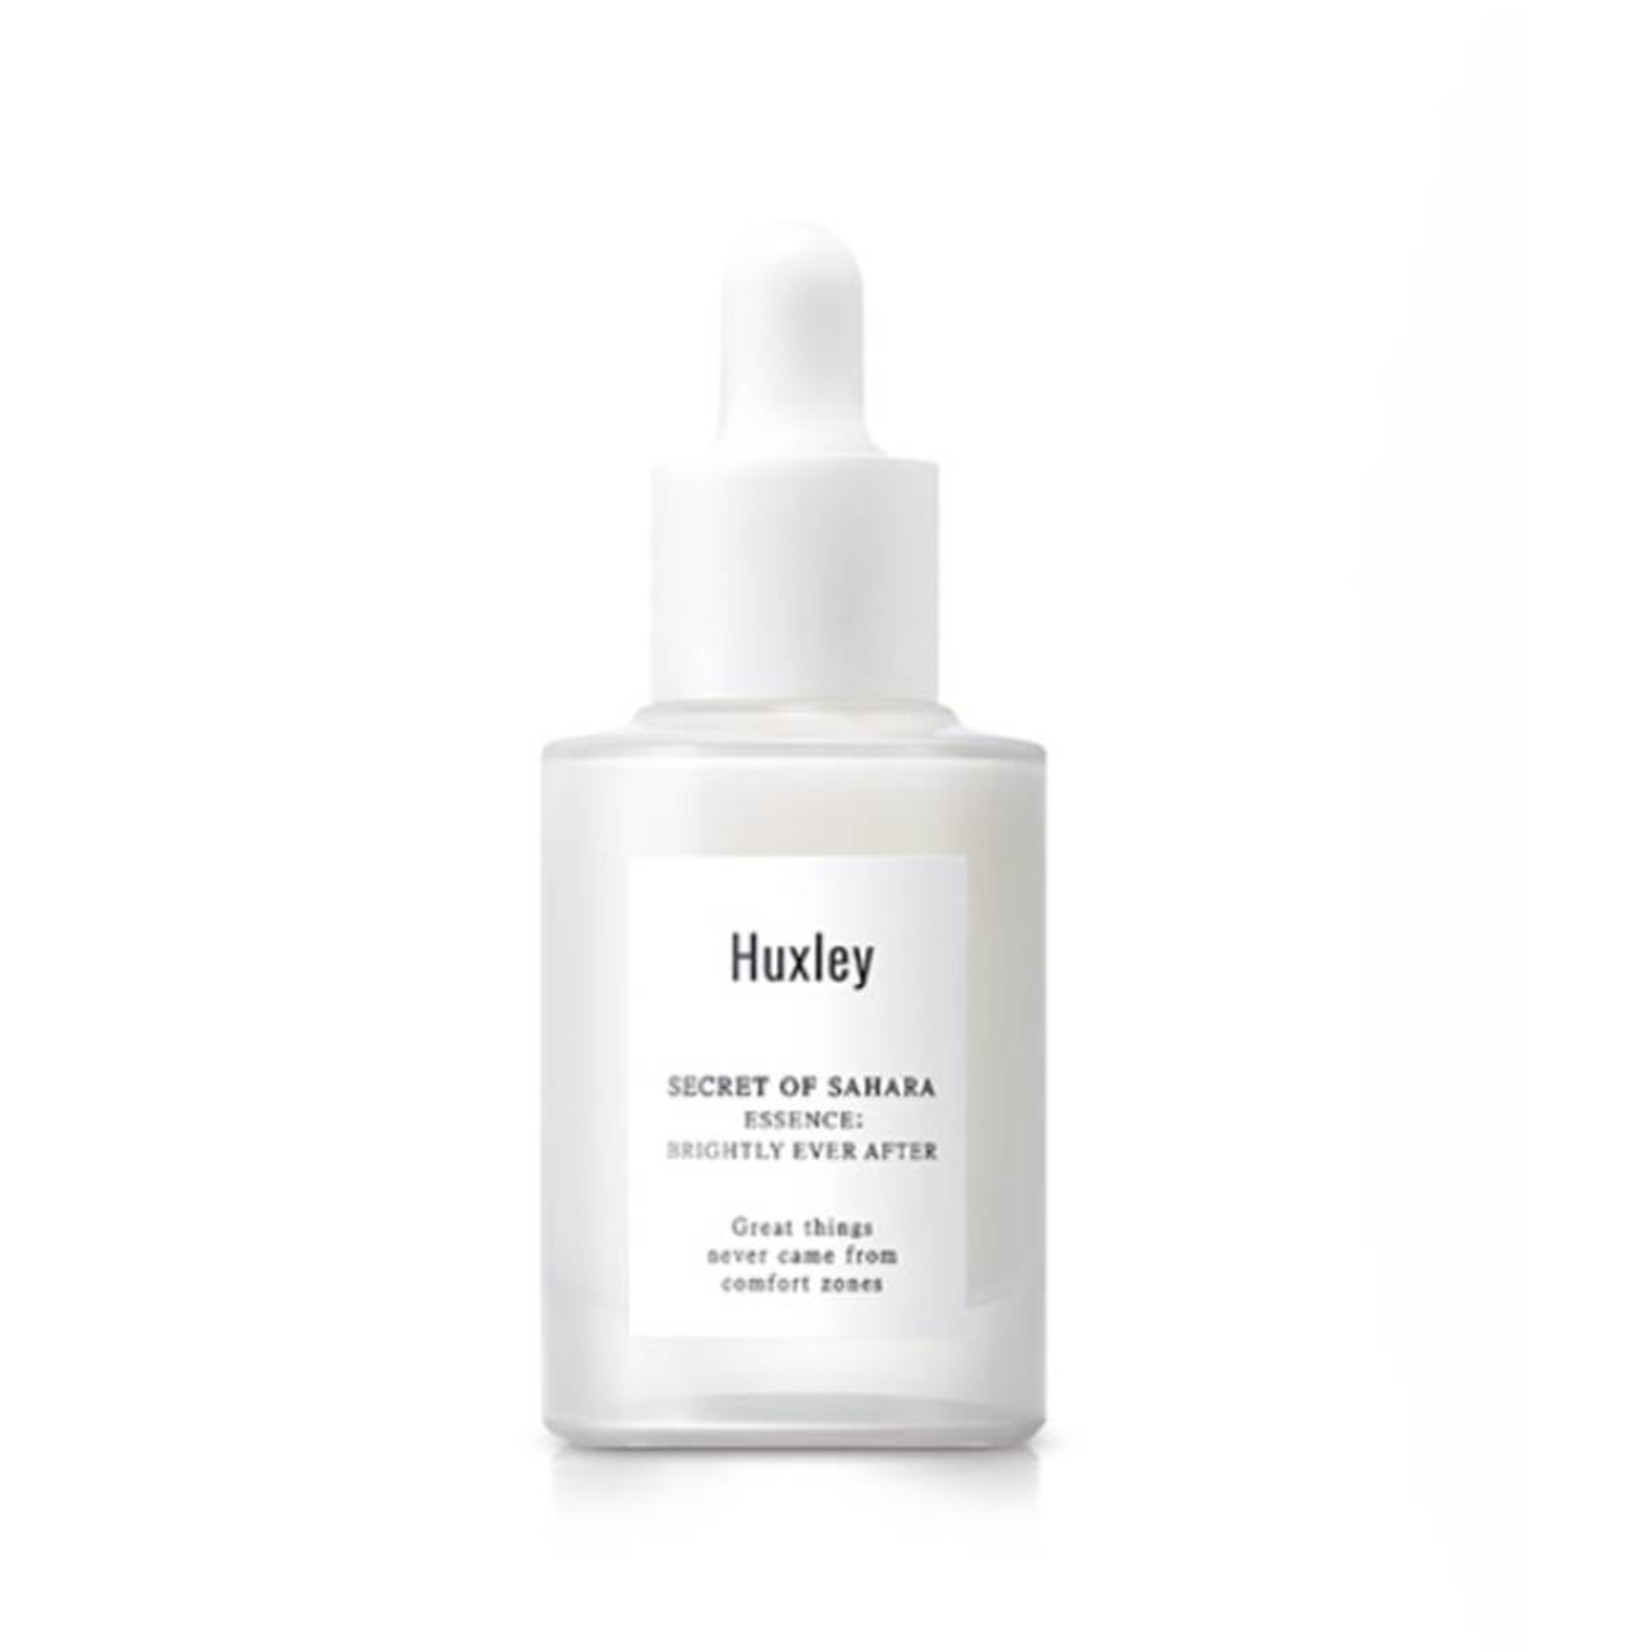 Huxley Essence Brightly Ever After